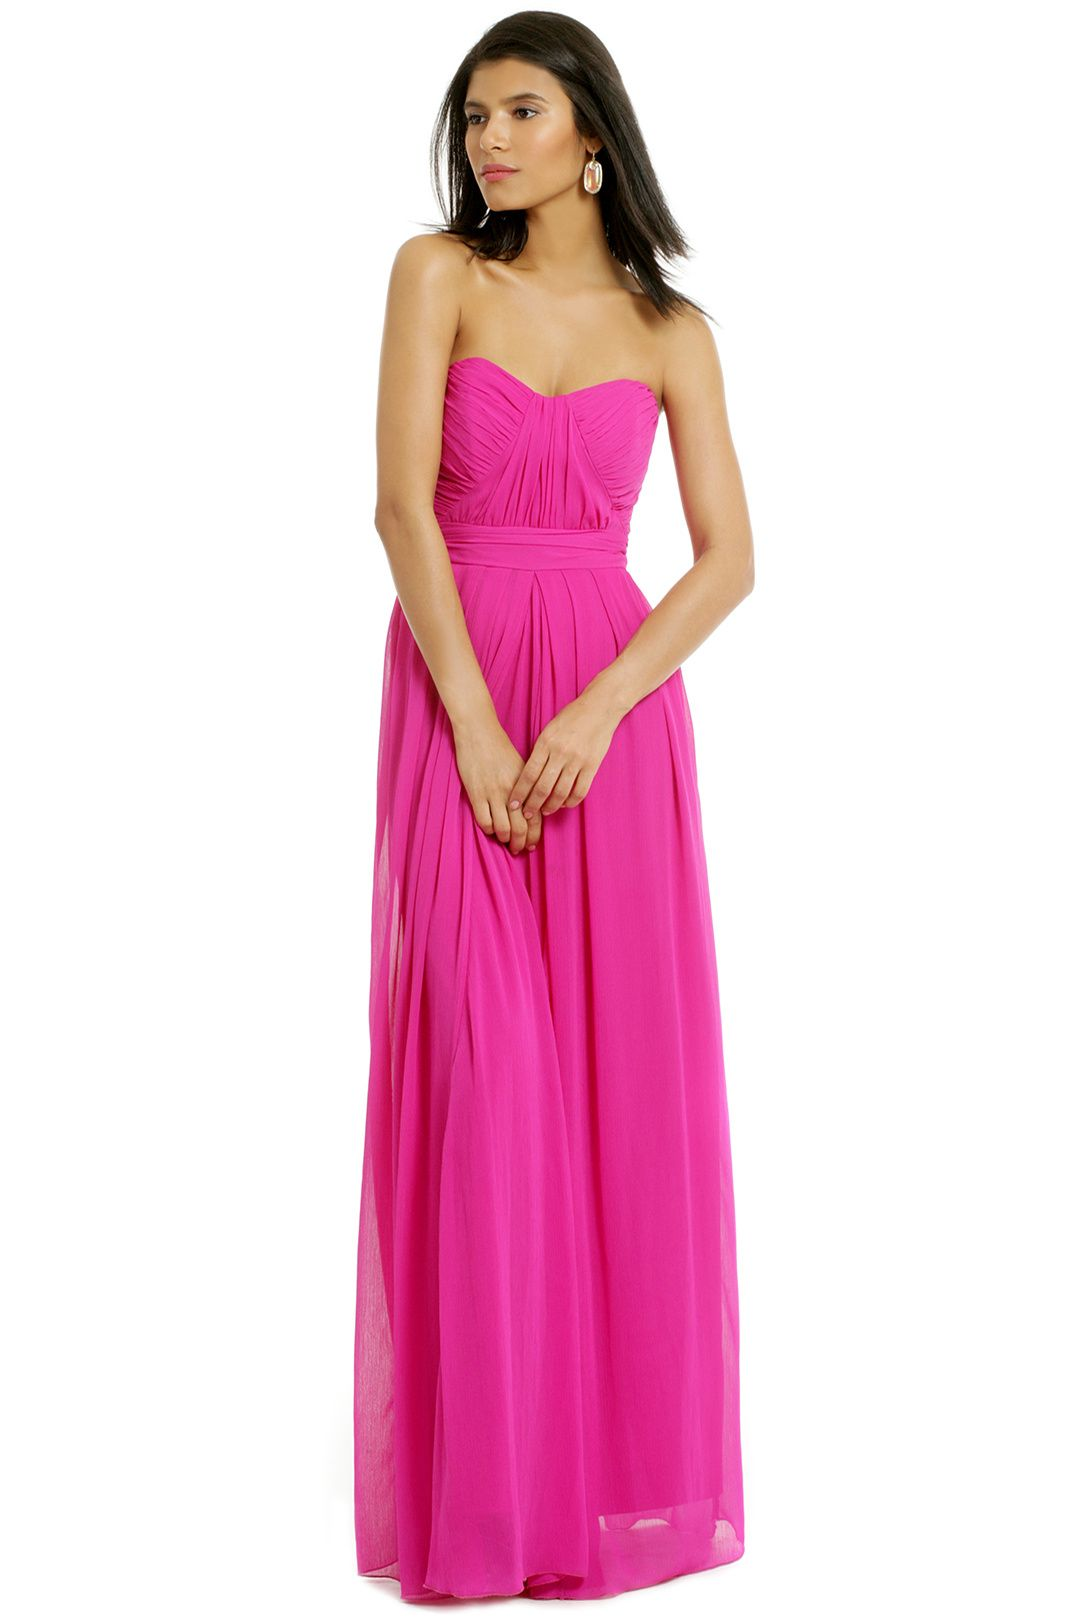 Fluorescent Chiffon Gown by Badgley Mischka for $80 | Rent The ...